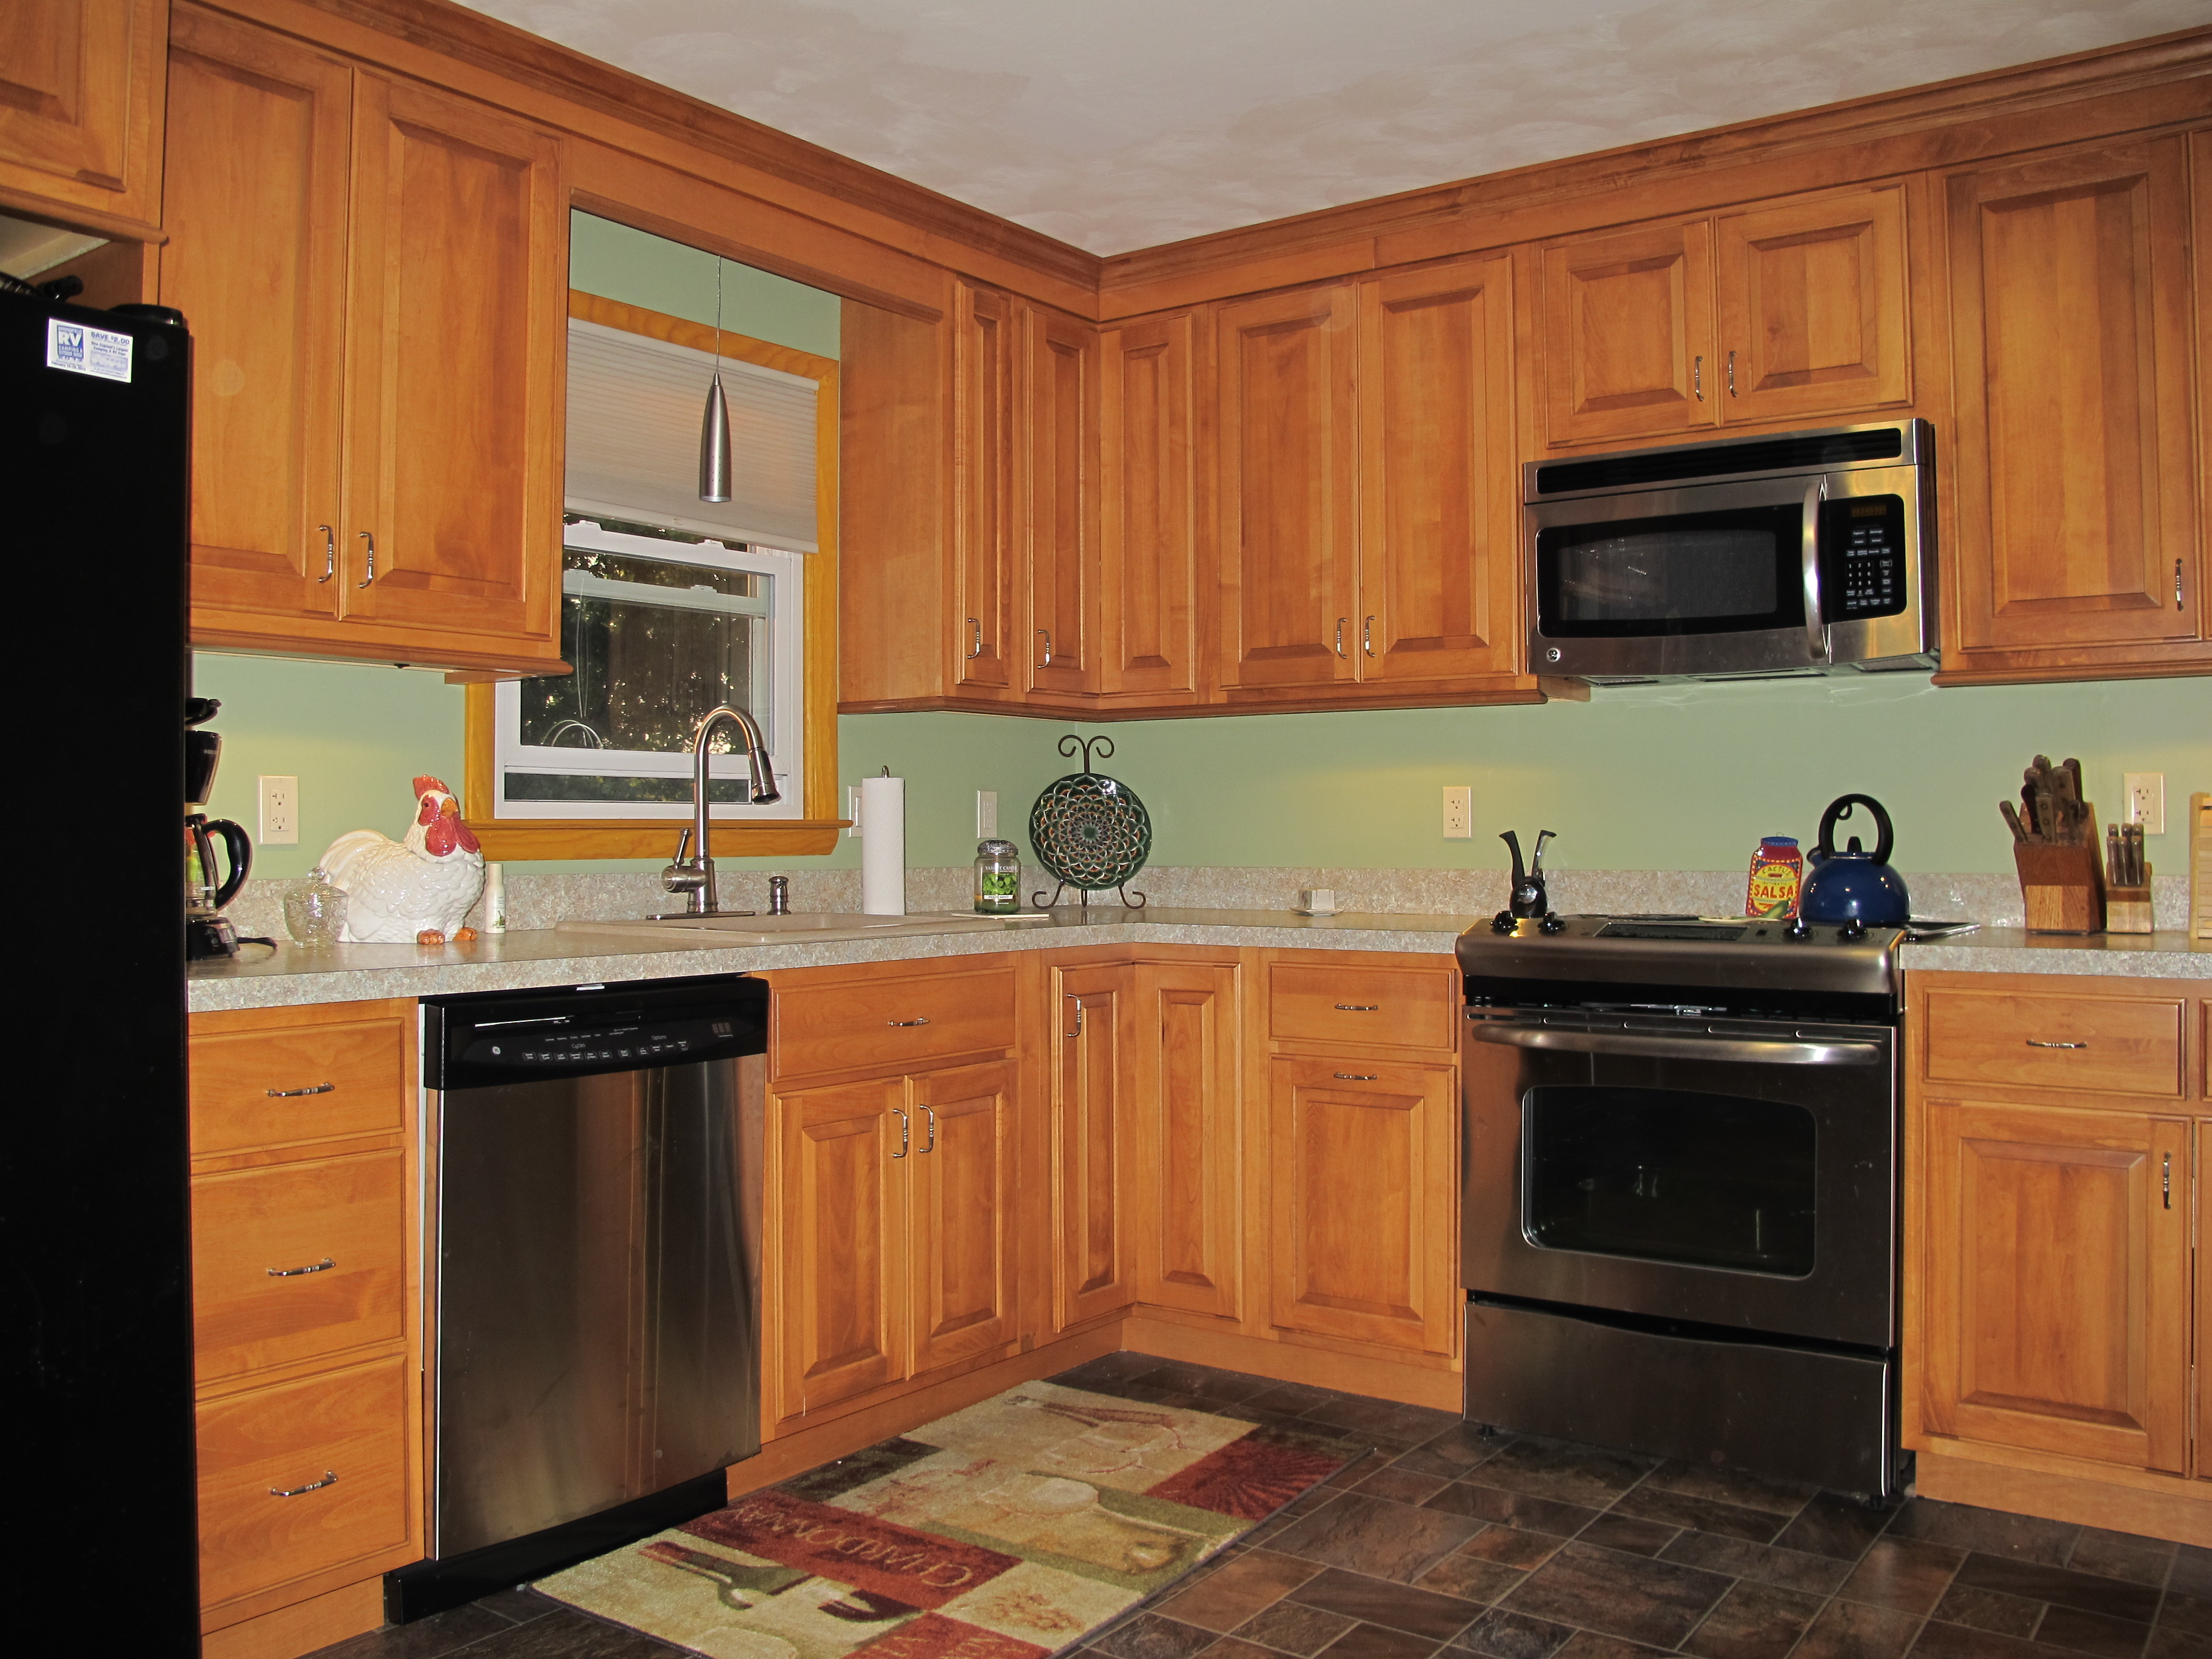 Kitchens Cabinetry By Cilcourt